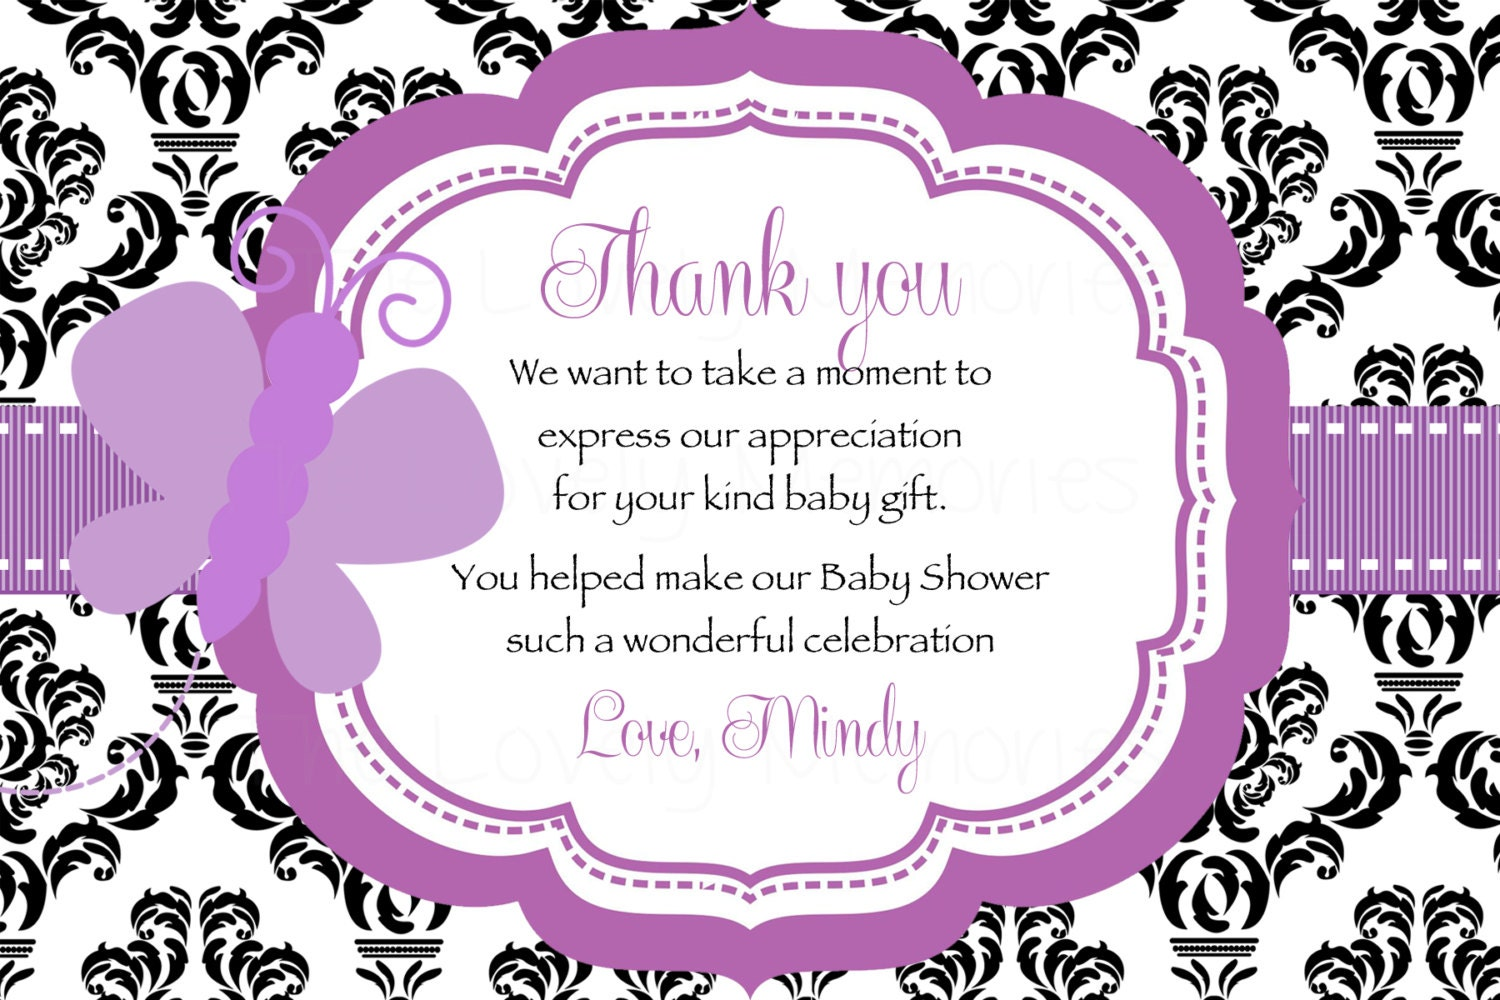 It's just an image of Obsessed Printable Baby Shower Thank You Cards